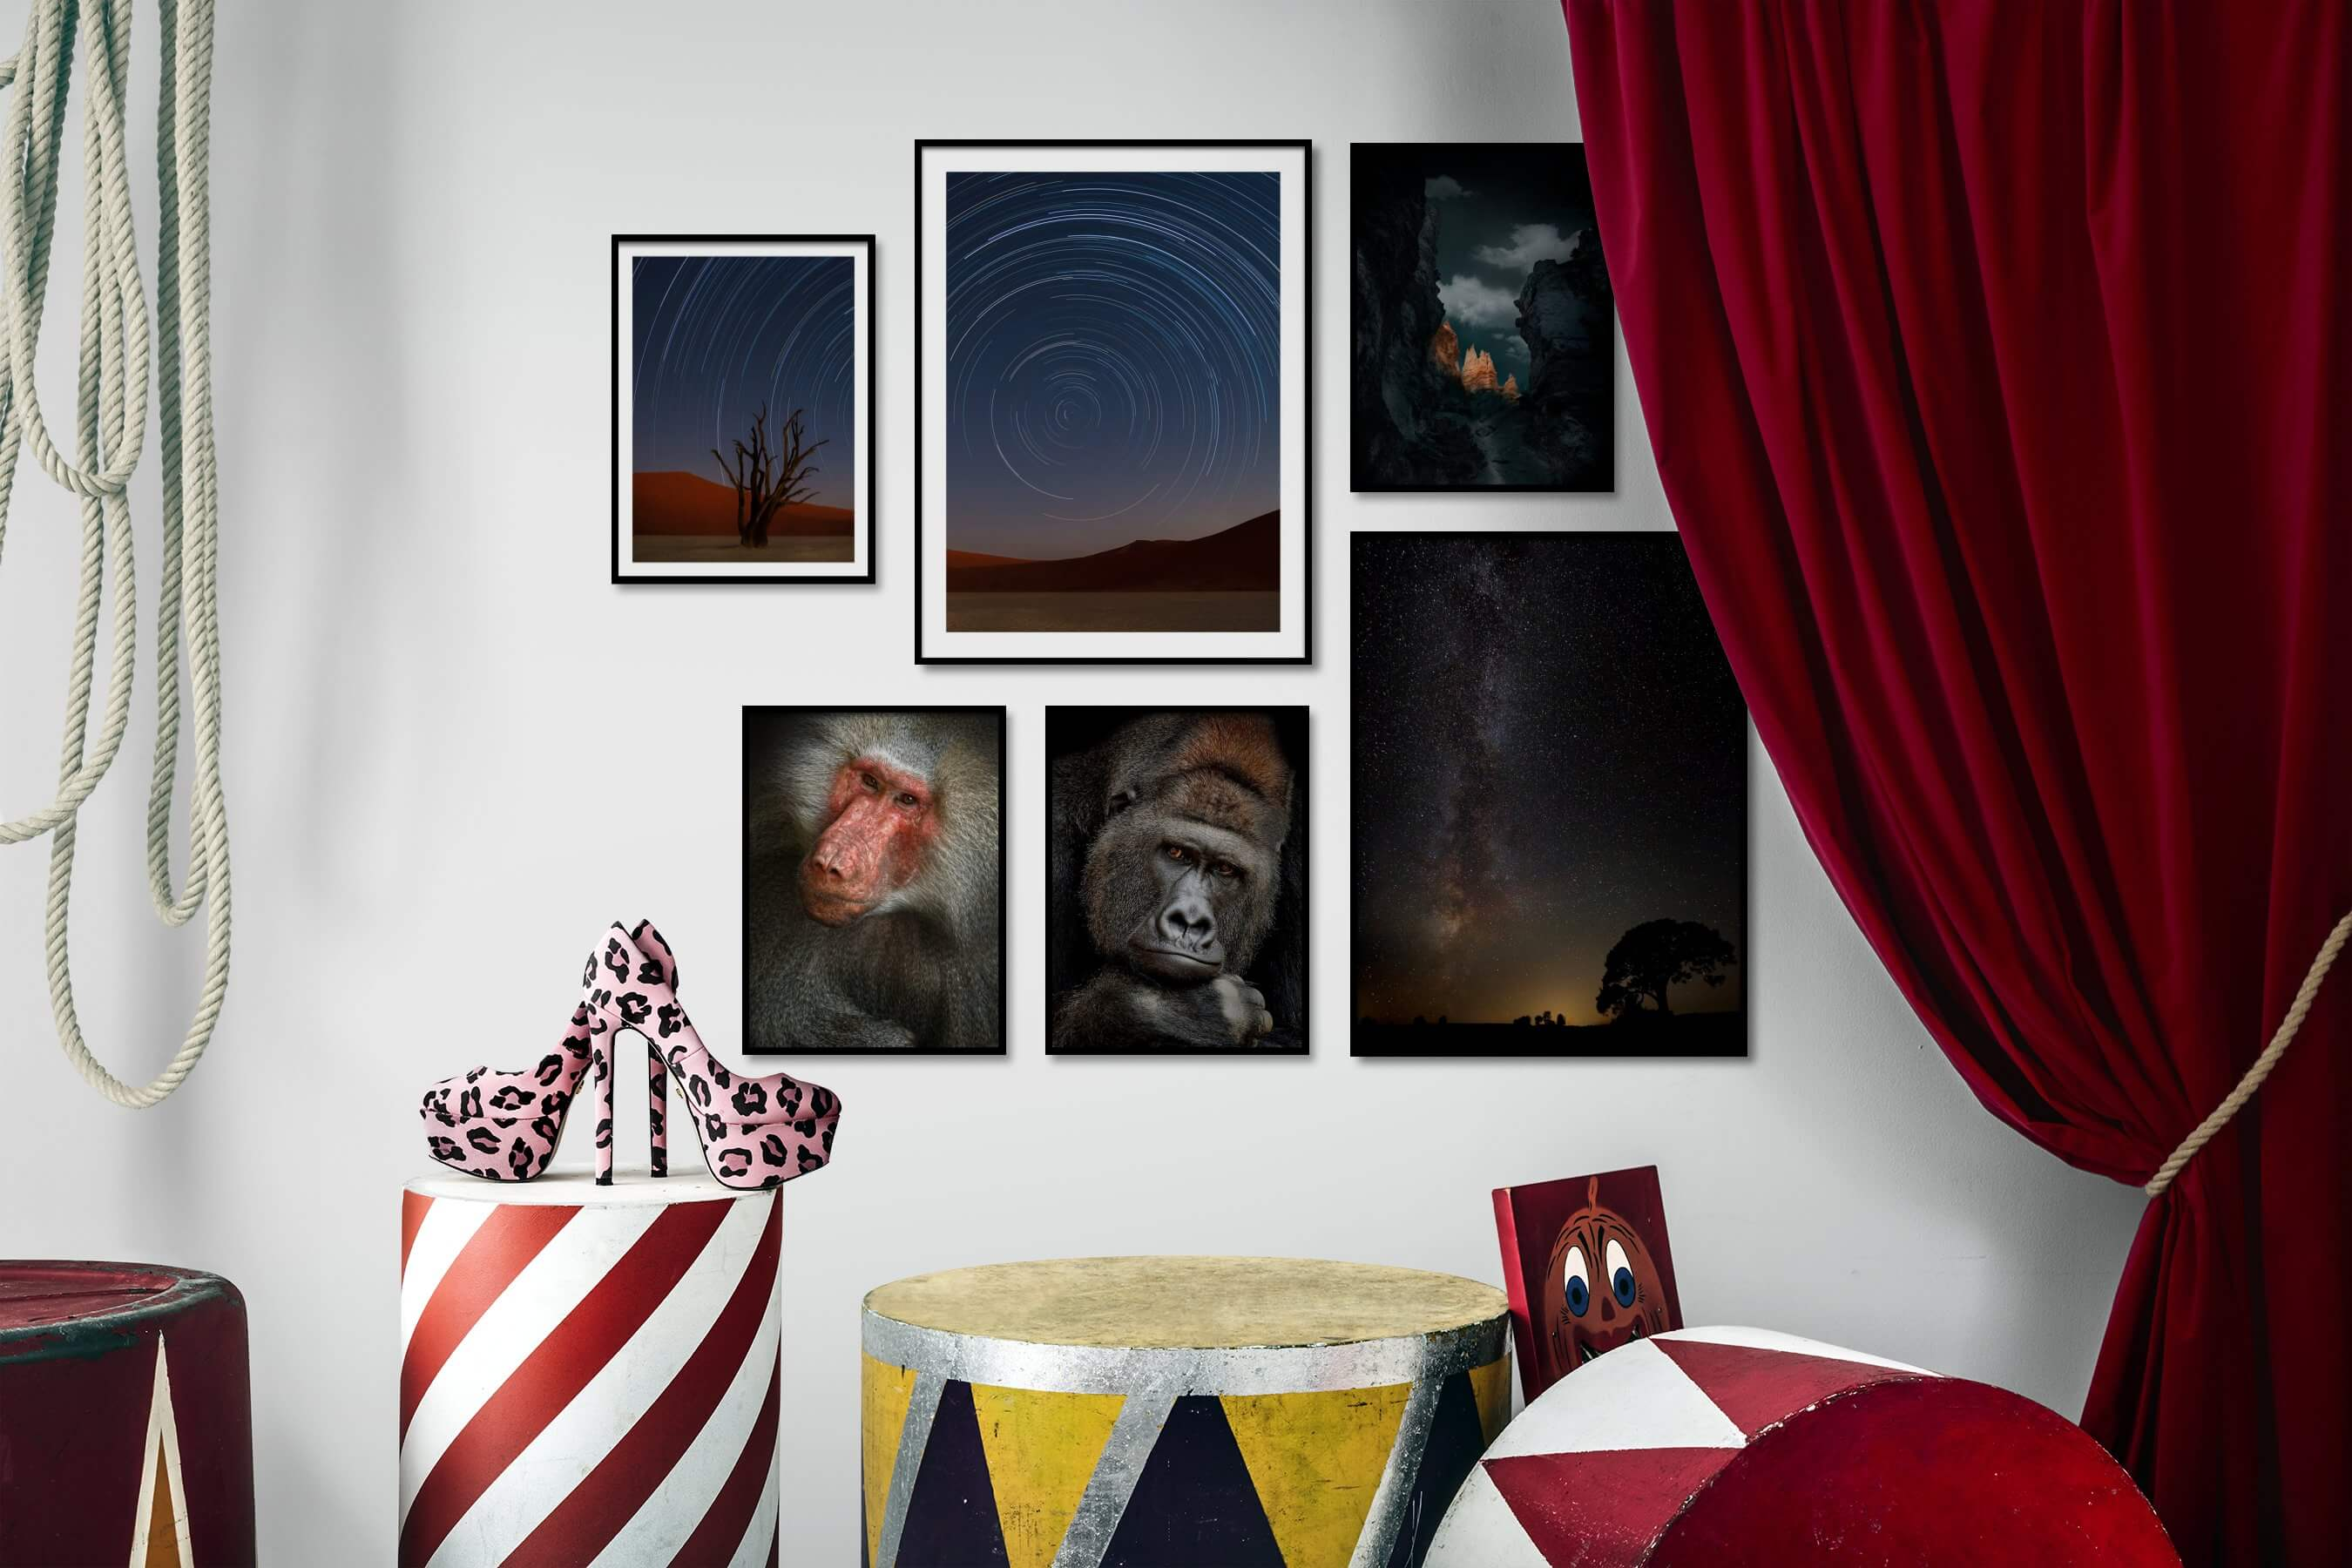 Gallery wall idea with six framed pictures arranged on a wall depicting For the Moderate, Nature, Animals, Dark Tones, and For the Minimalist